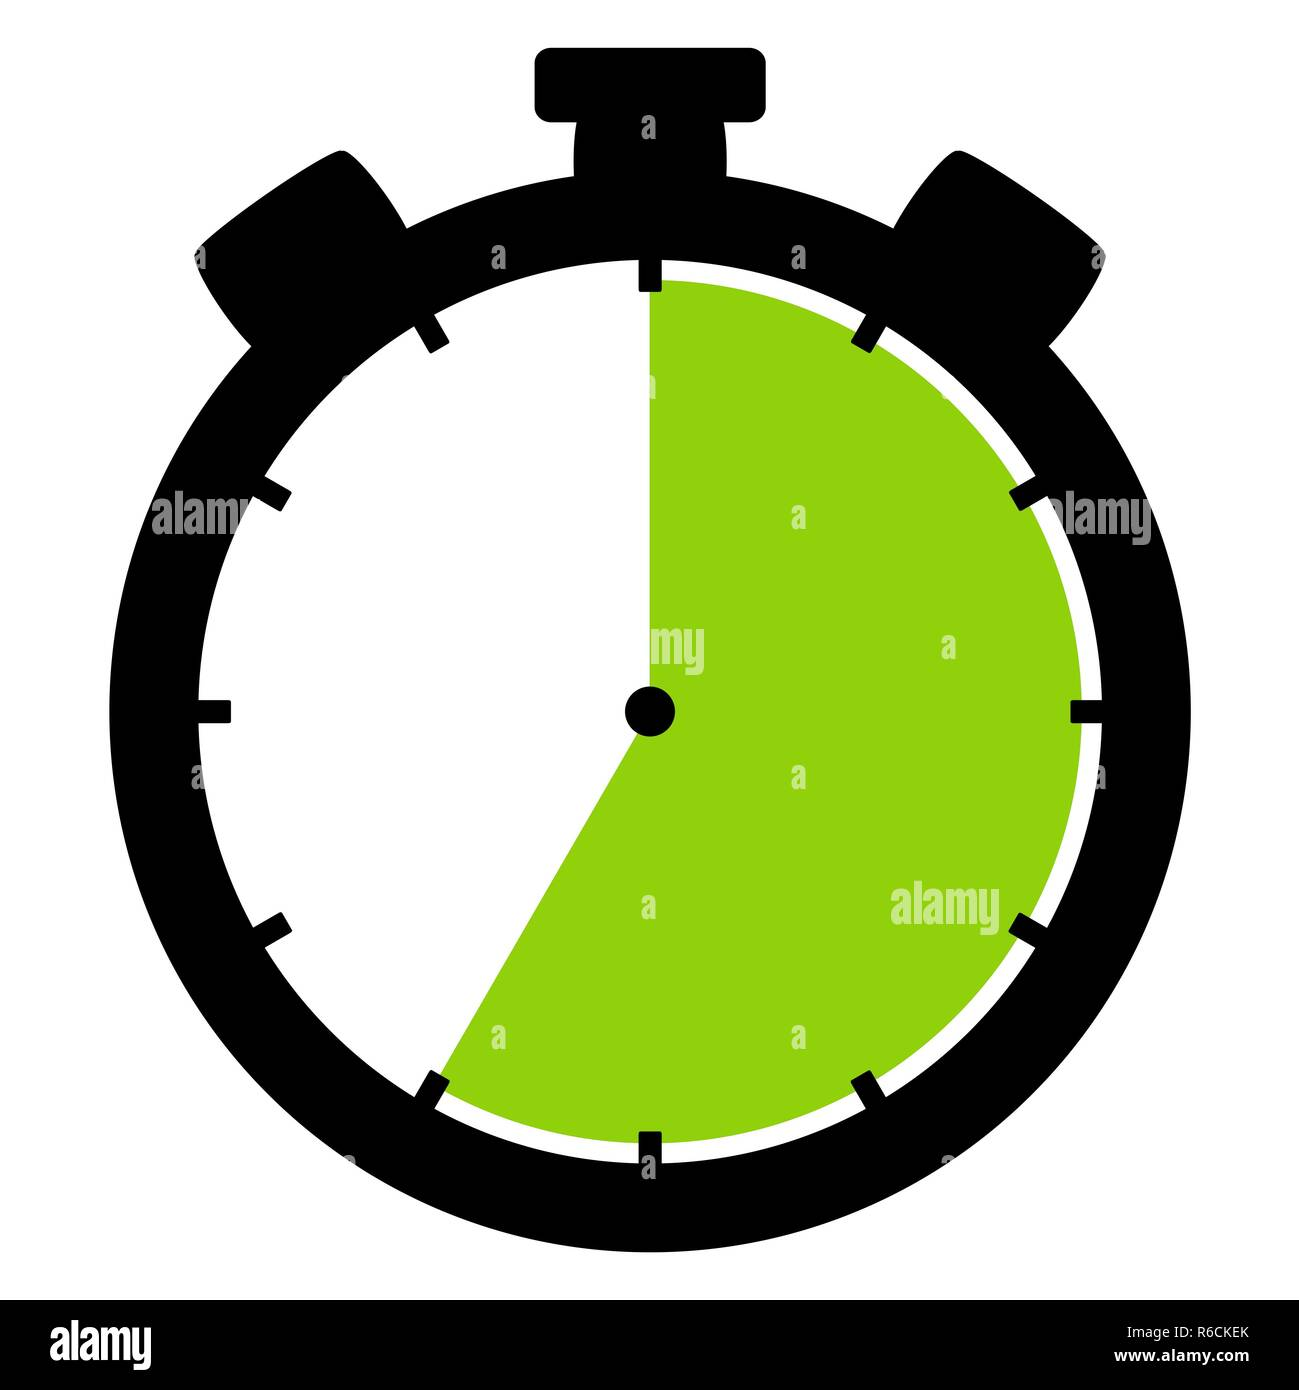 stopwatch icon: 35 minutes 35 seconds or 7 hours - Stock Image